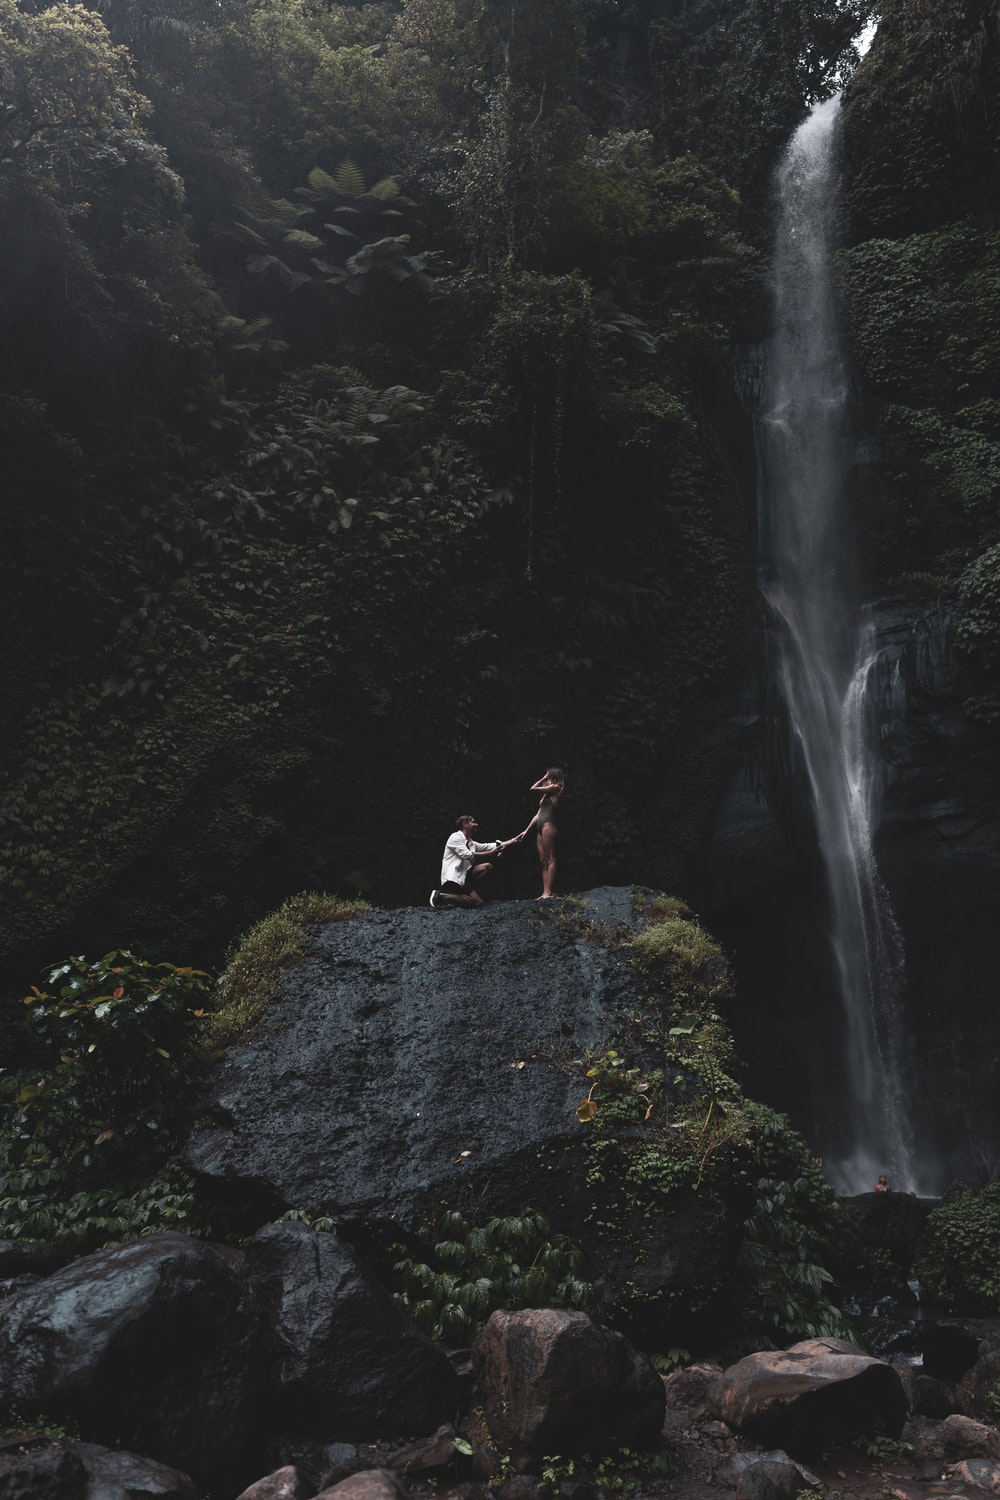 man in white shirt and black shorts standing on rock near waterfalls during daytime